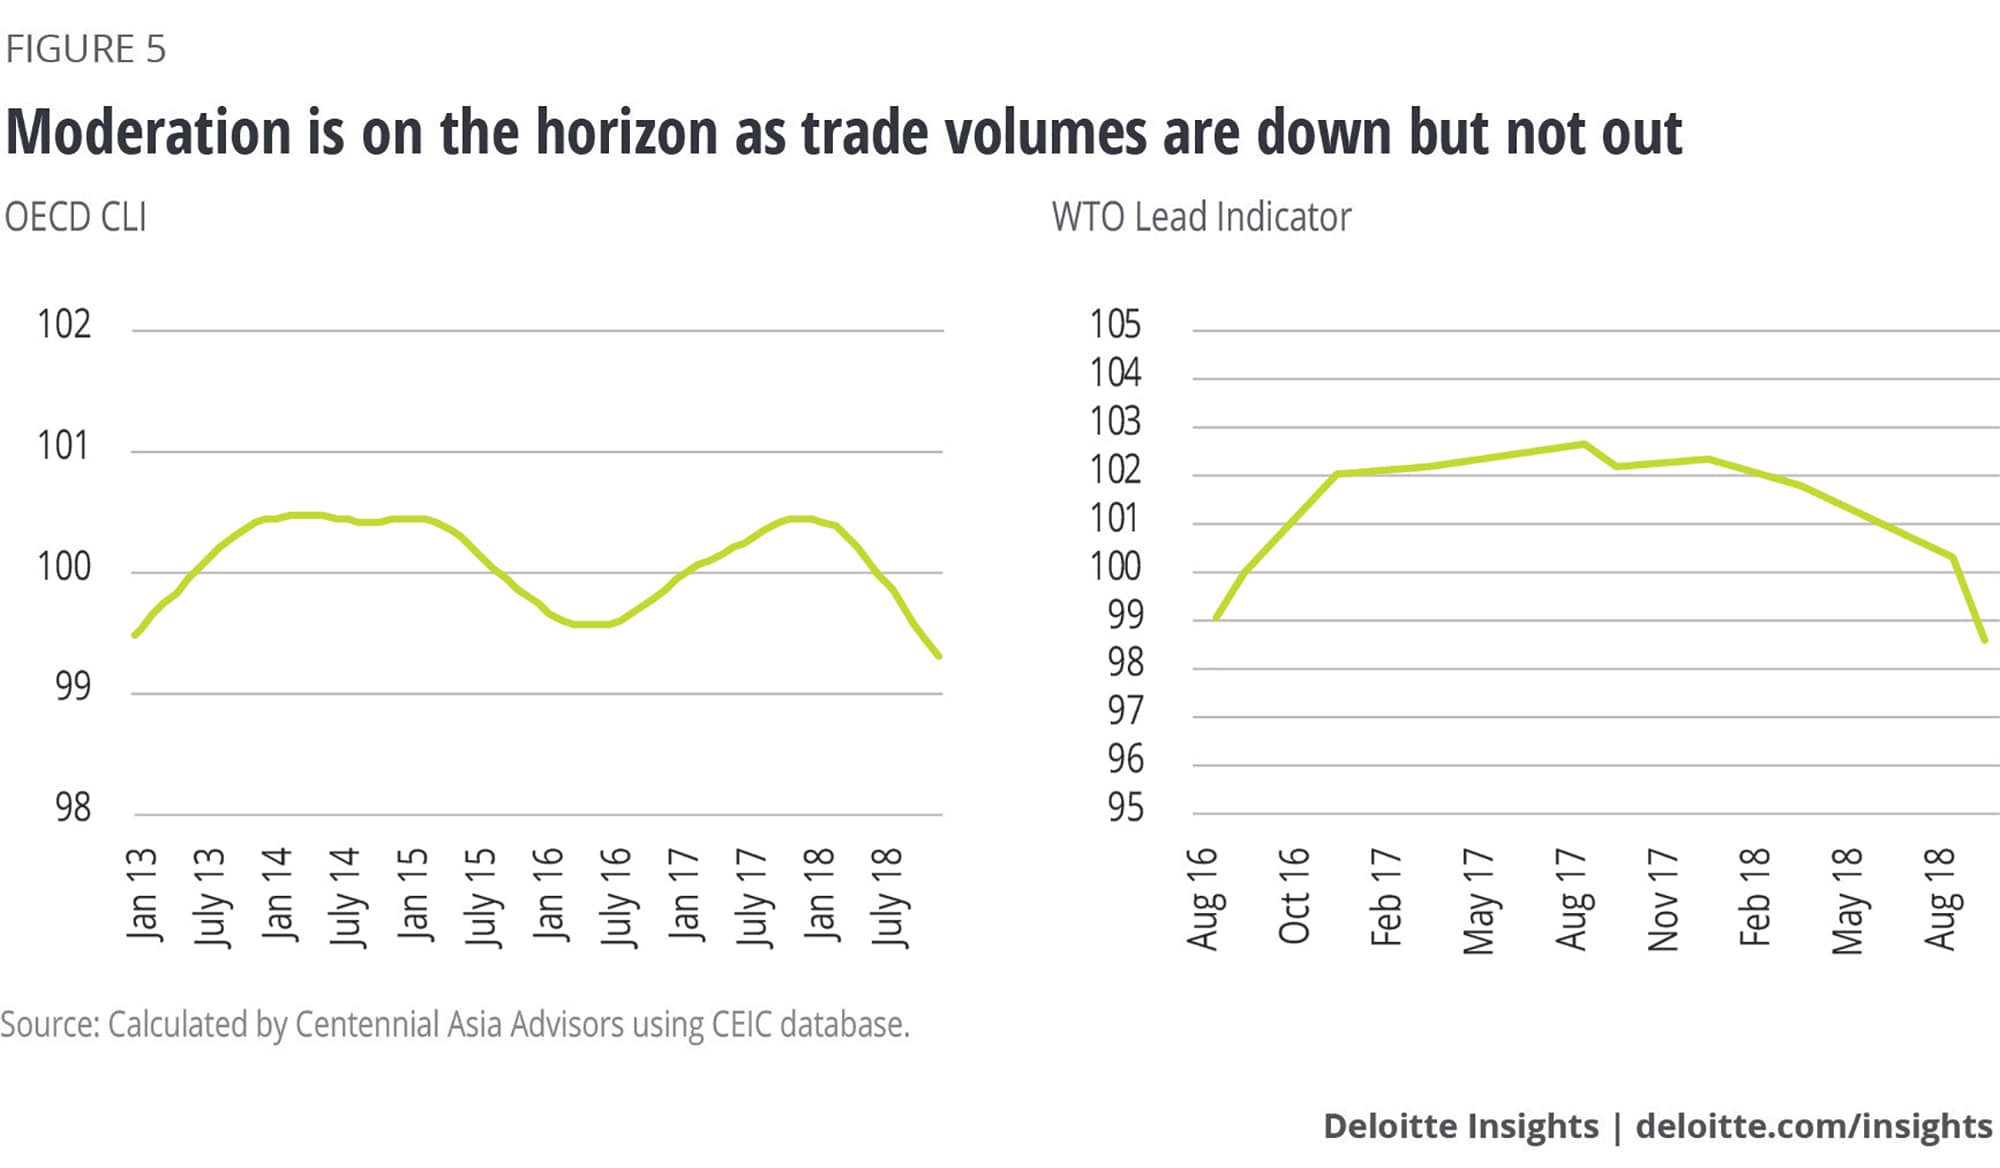 Moderation is on the horizon as trade volumes are down but not out